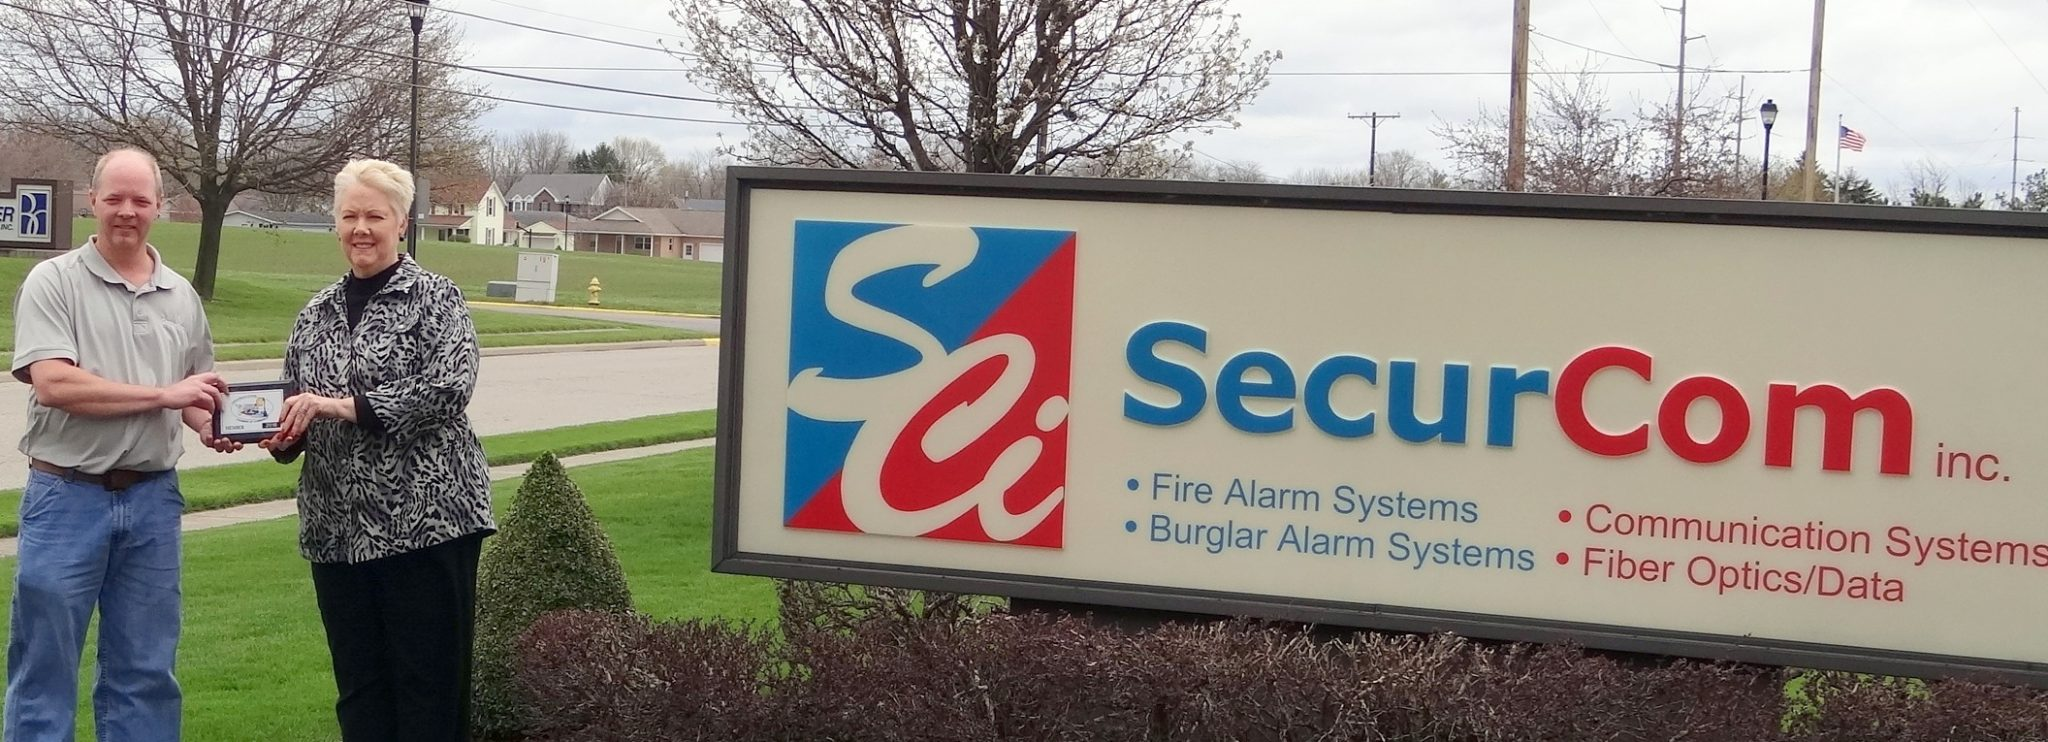 SecurCom Joins Chamber